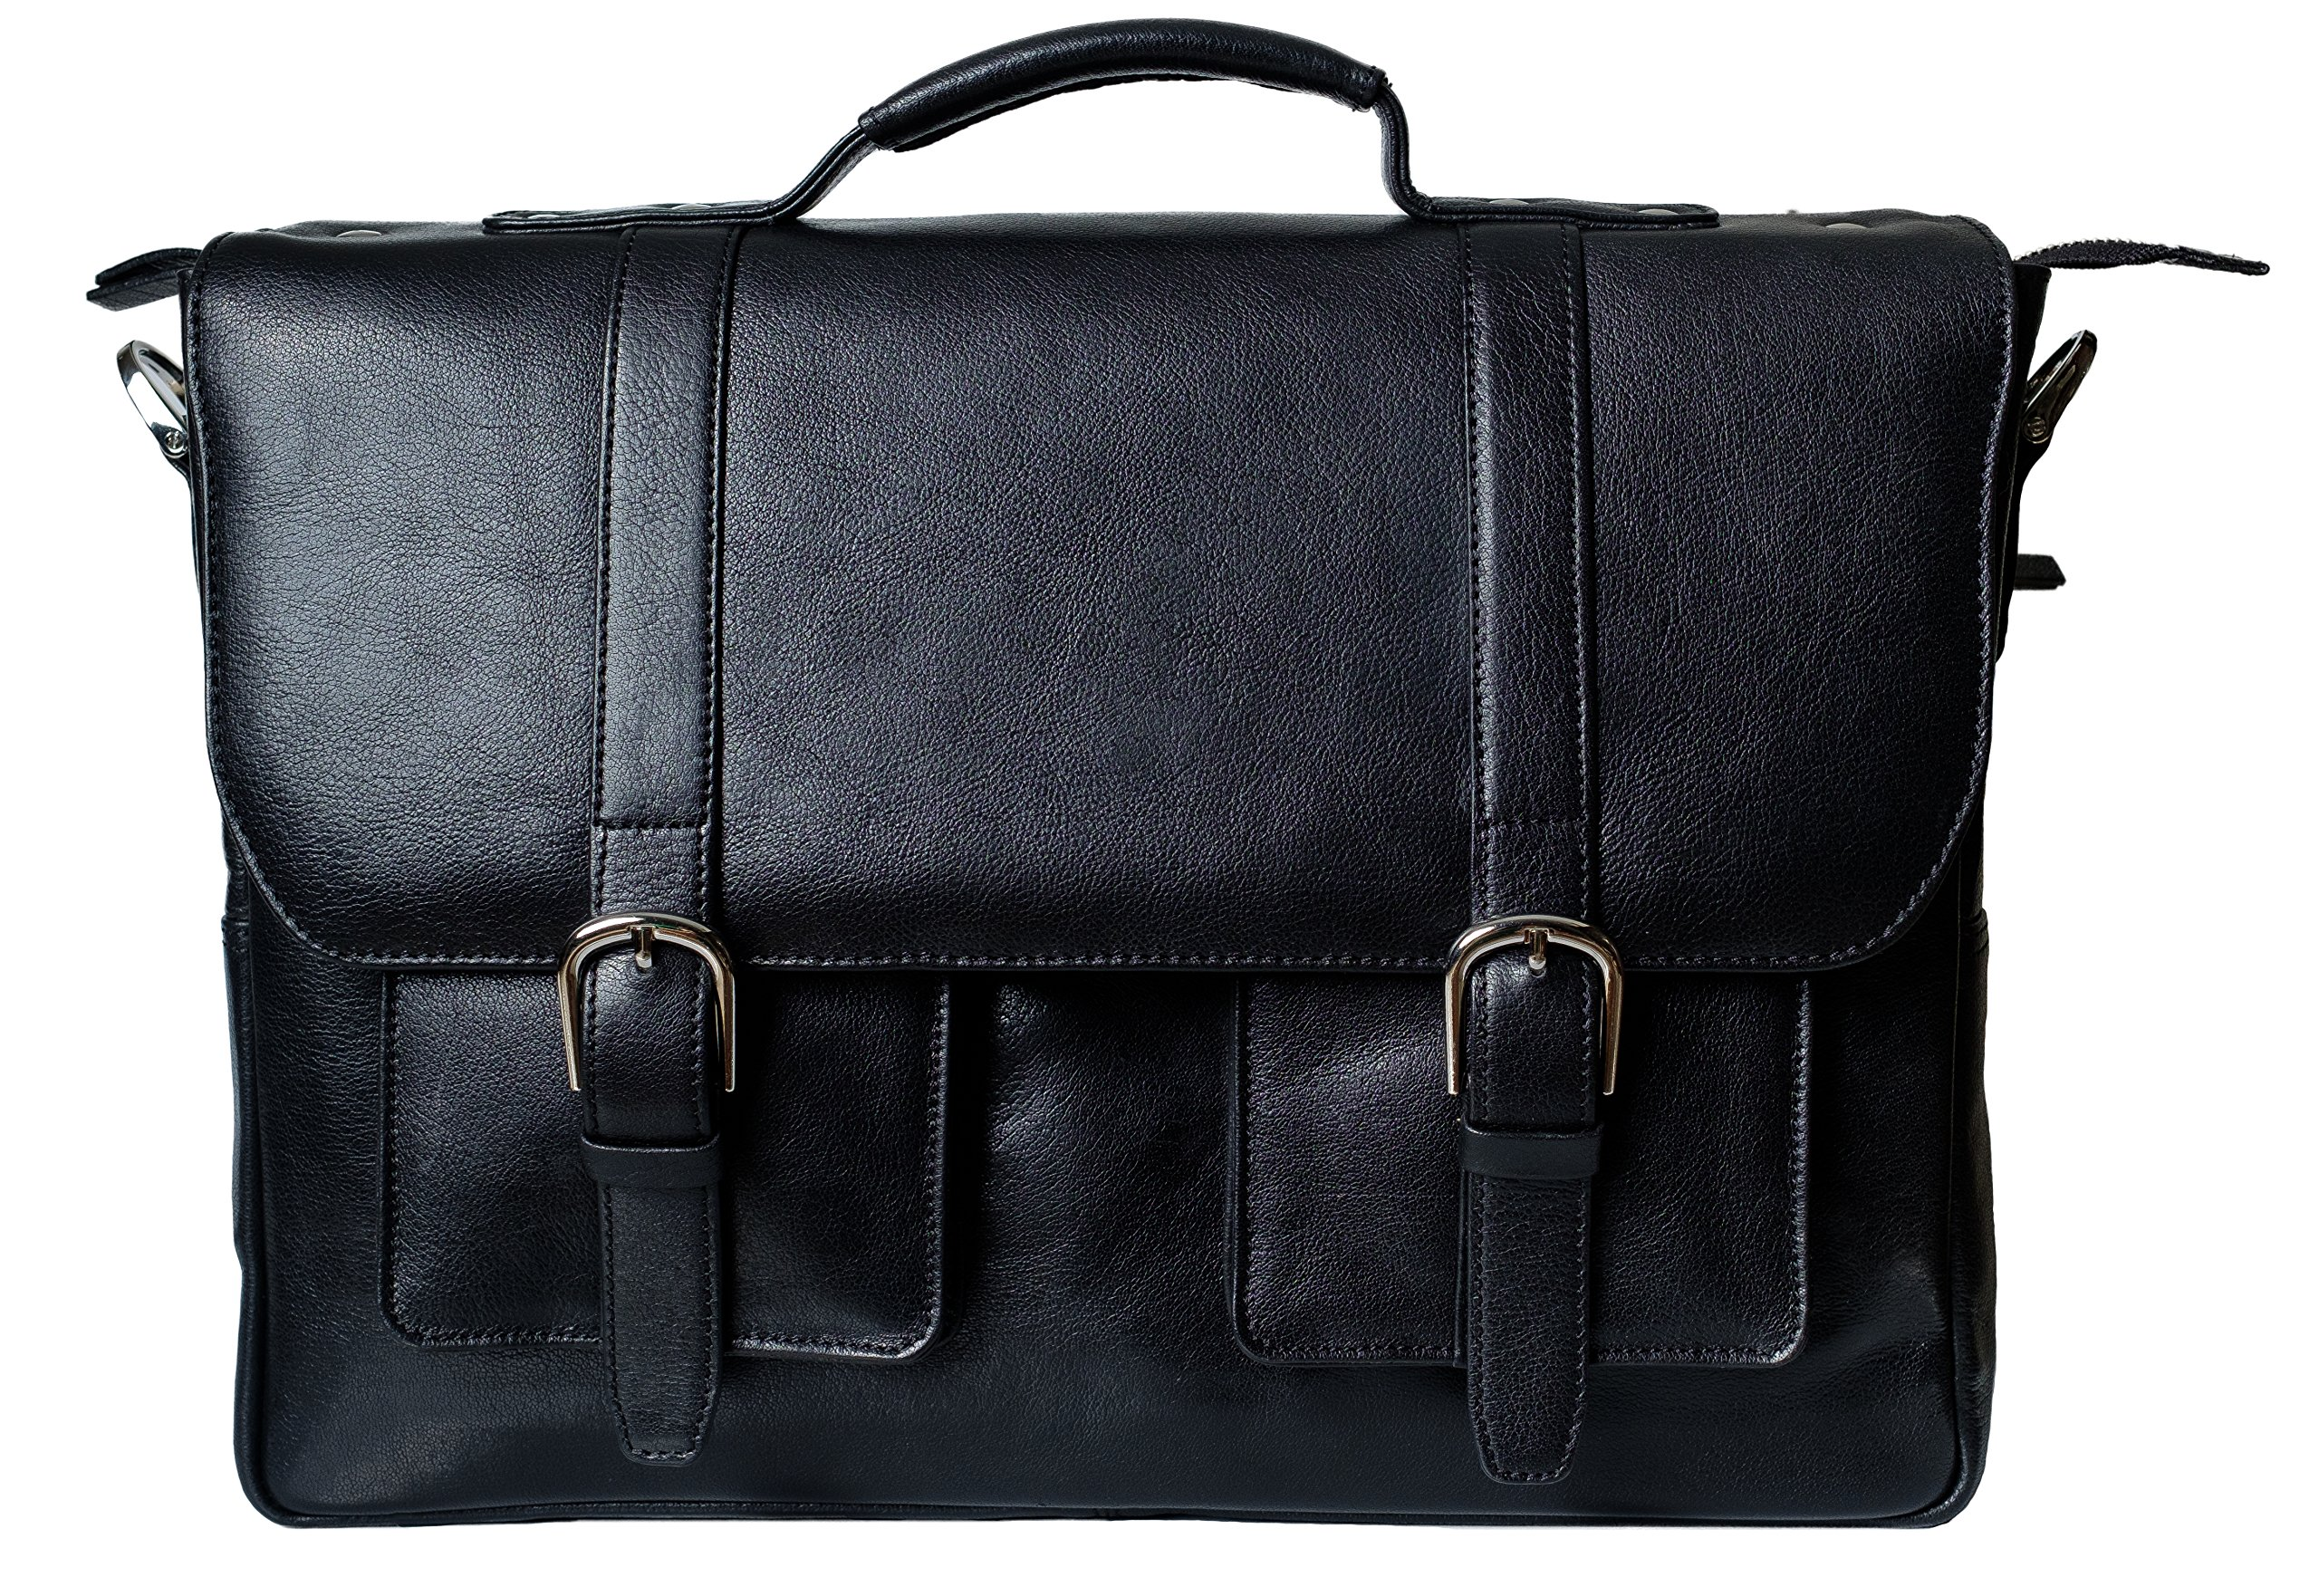 Genuine Calf Leather Briefcase/Messenger Laptop Bag for Men, GORDON, fits 15.4 inch Macbook Pro, adjustable strap, 15 inch by 11.5 inch by 3.5 inch (BLACK), by Ladderback